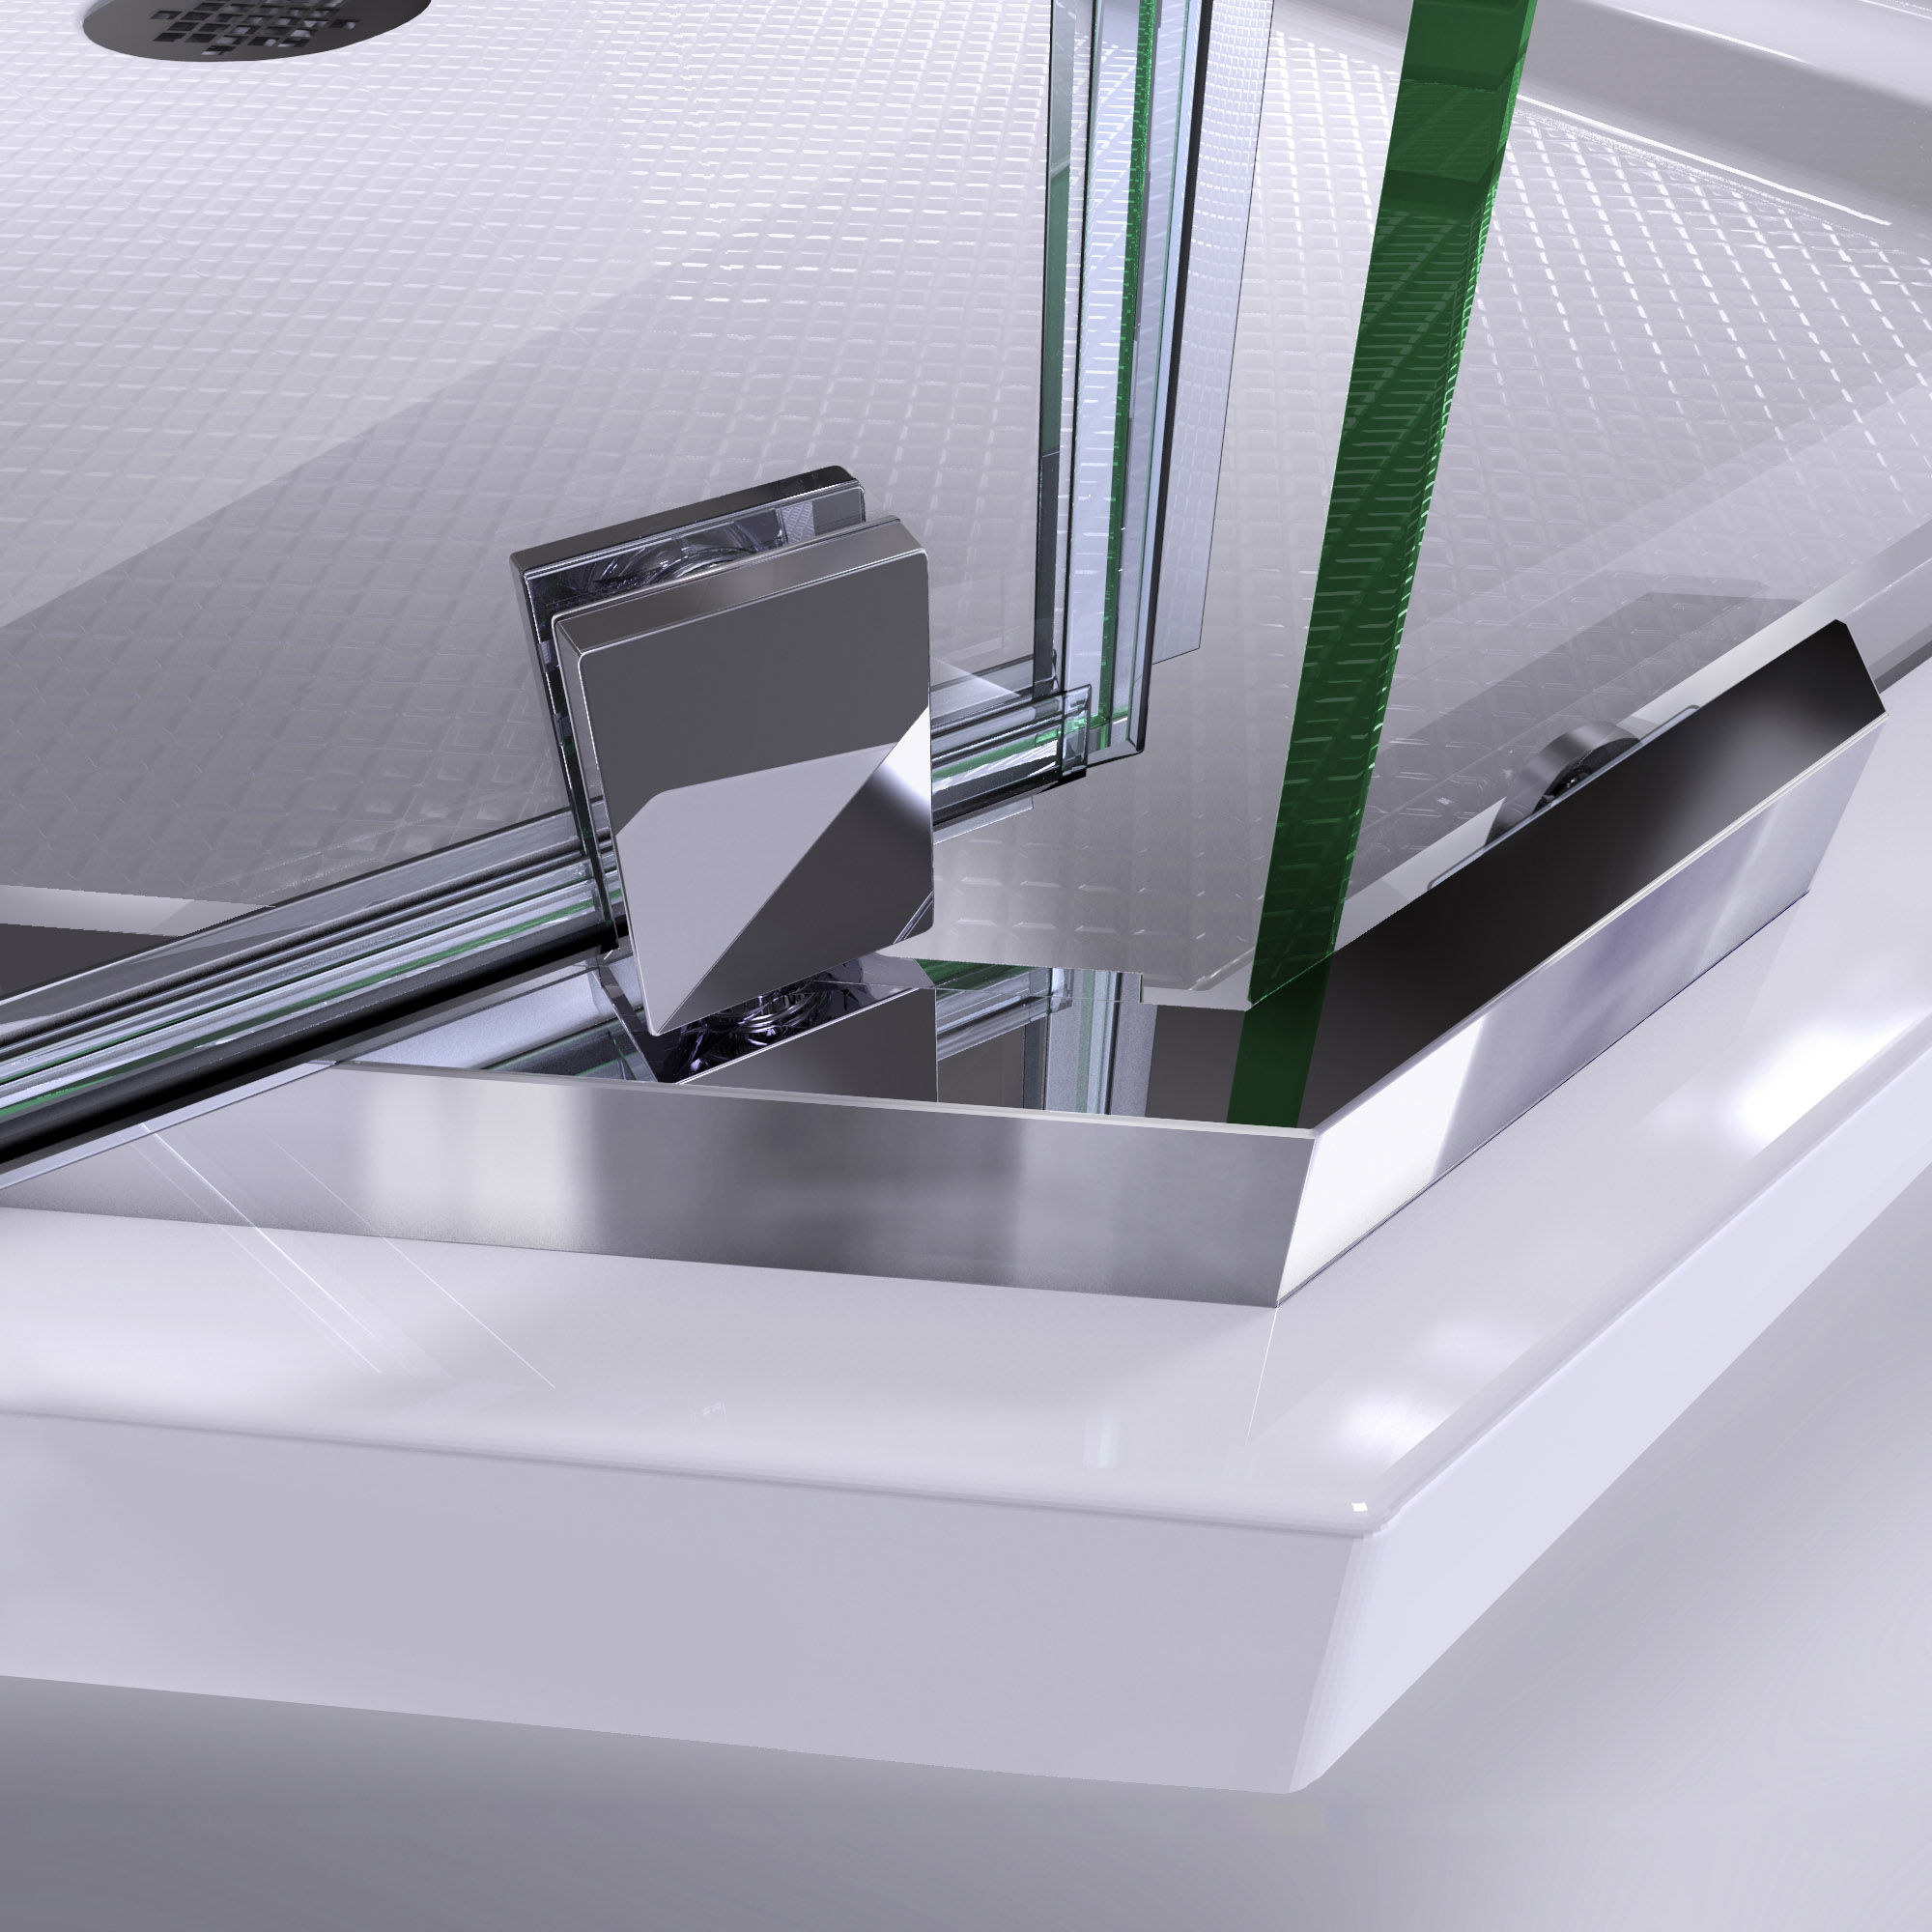 DreamLine Prism 36 in. x 74 3/4 in. Frameless Neo-Angle Pivot Shower Enclosure in Chrome with Biscuit Base Kit